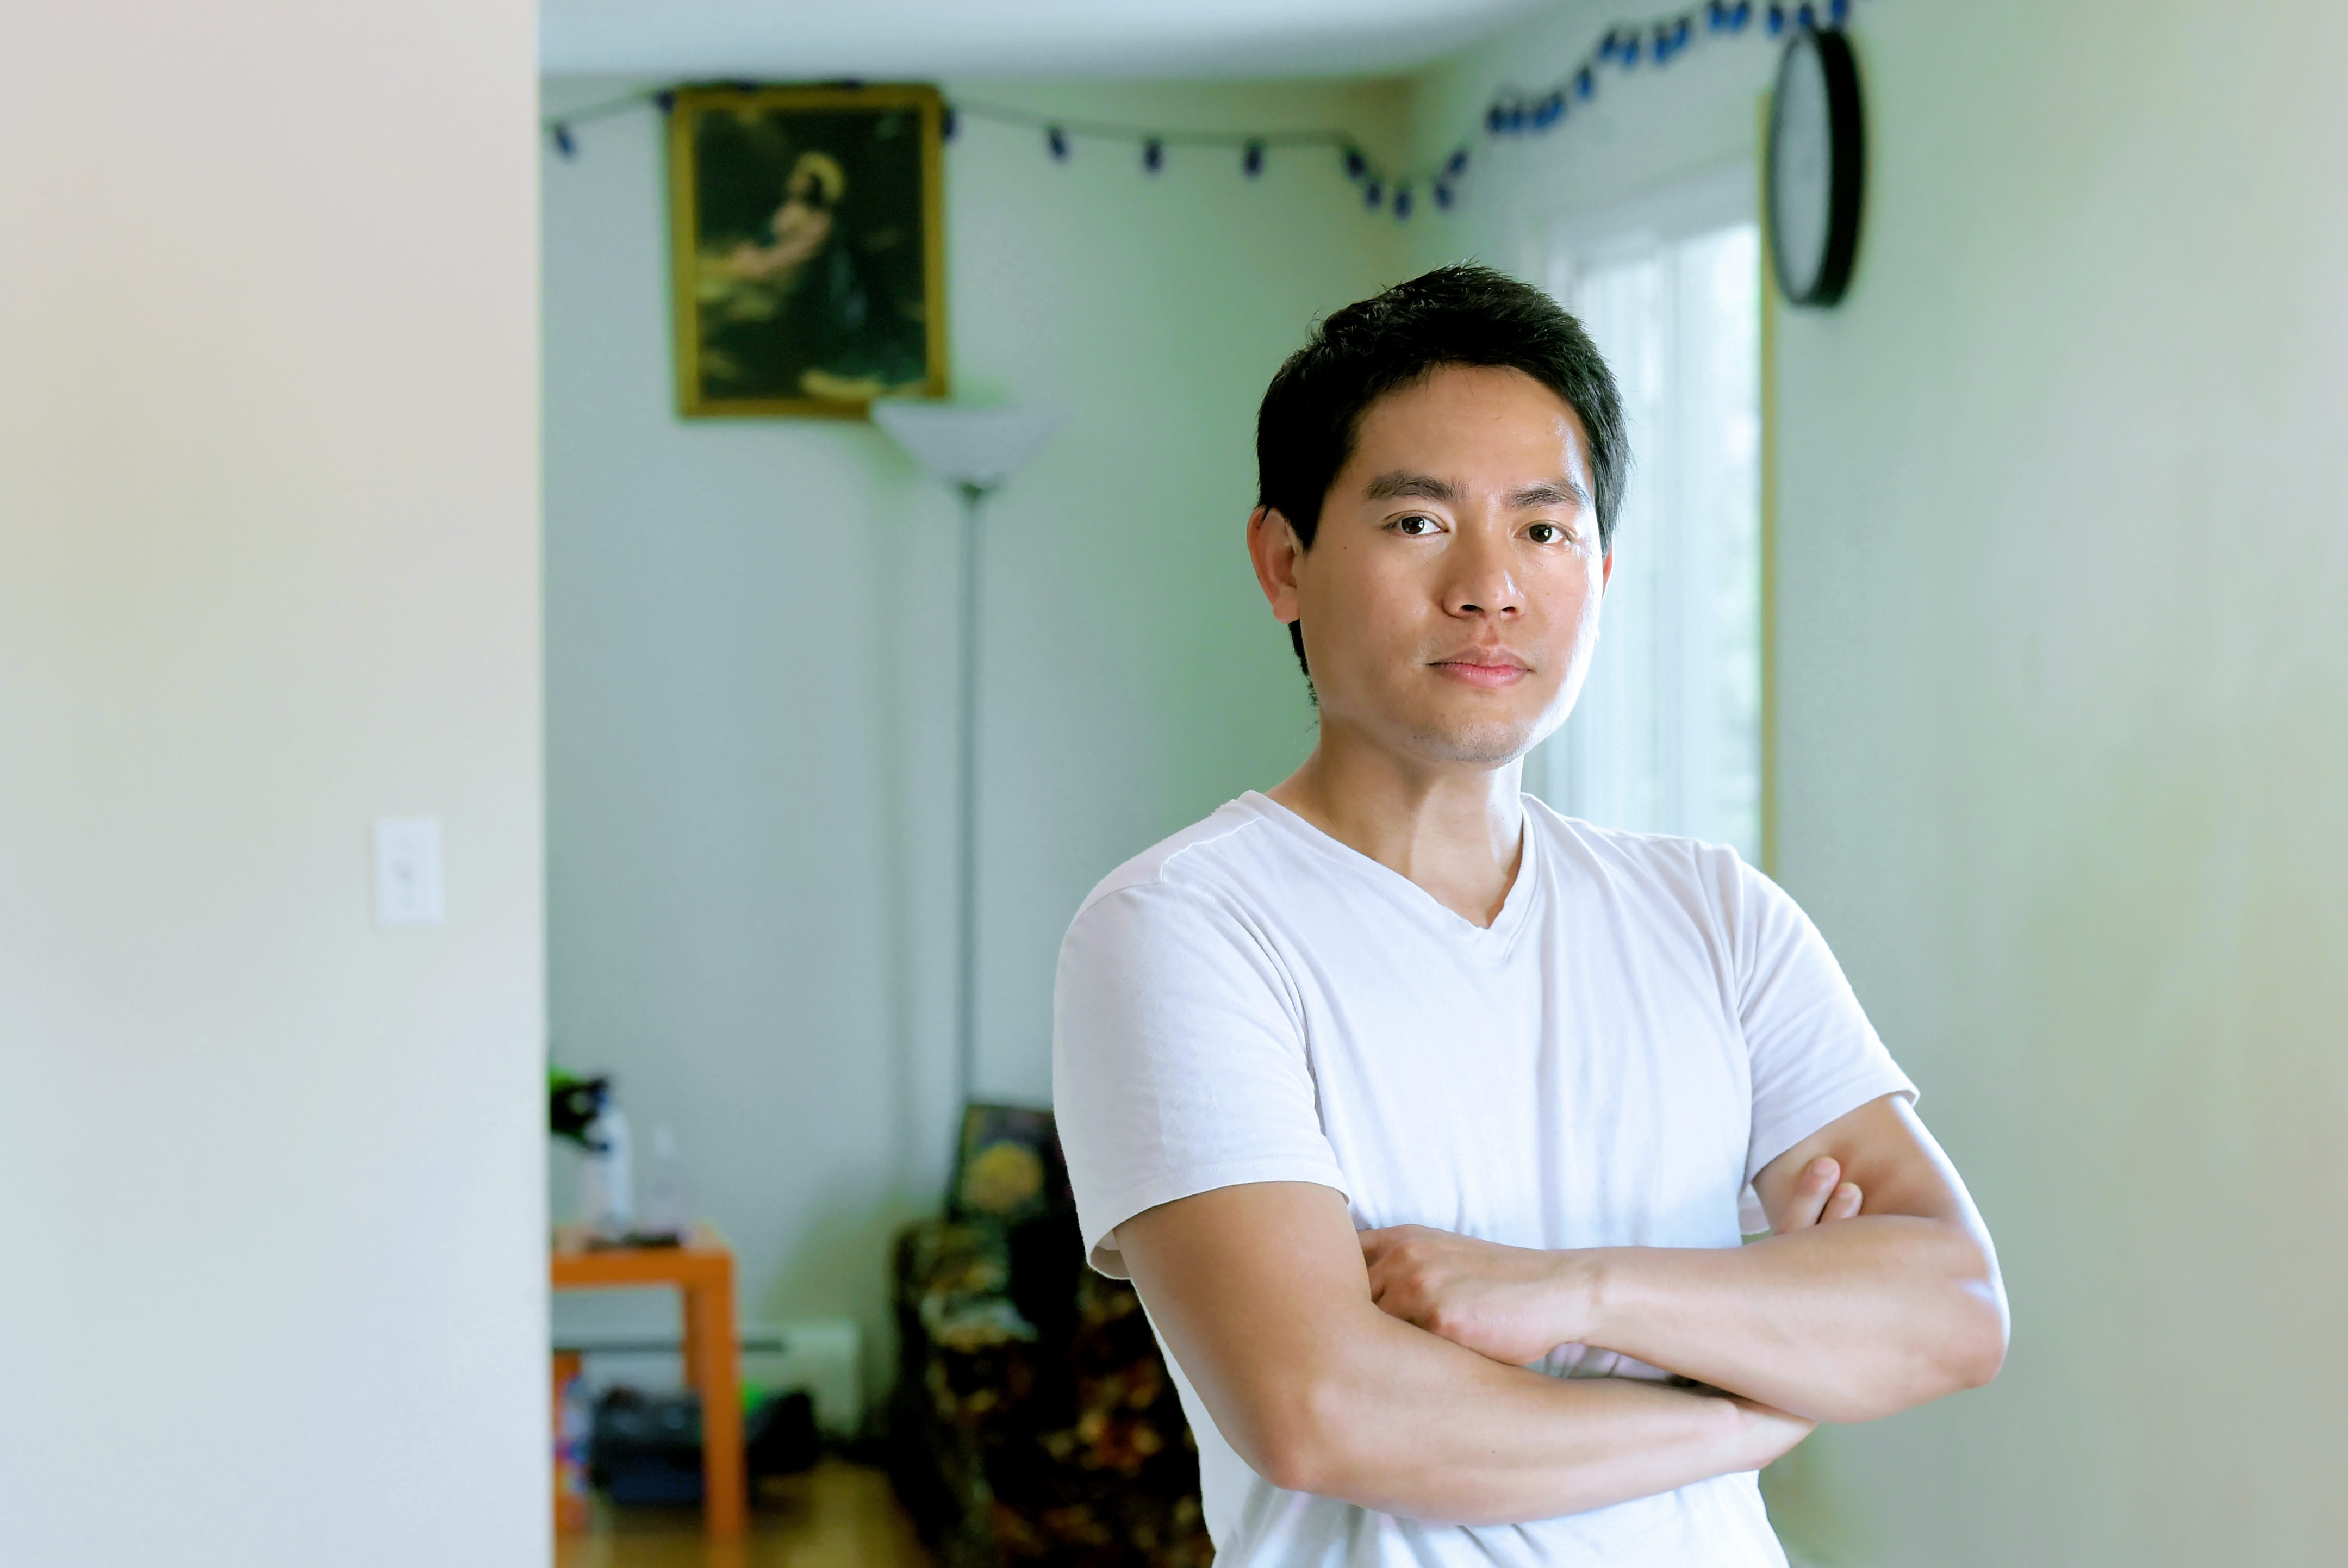 """Hsa Moo, 32, from Ithaca; lost work at Cornell University in Ithaca in March due to COVID-19. Hsa Moo, a Burmese/Karen refugee, has worked at Cornell's Statler Hotel since 2011. Recently purchased his first home, where he resides with his wife, his mother and his nephew. """"I do worry. I bought a house last year. And if this thing continues to happen, I might lose my house if I won't be able to pay the mortgage. We just have to pray right now and let God decide it for us what will happen next. I just have to wait when I will be able to return to work. It's not easy. I lived in a refugee camp before I got to the States. We faced a lot a problems over there but these problems, these challenges  are completely different from there, and we're kinda not ready. We never expect that we'd have these difficult times here but we're already in the situation so we just have to be strong. And pray."""""""